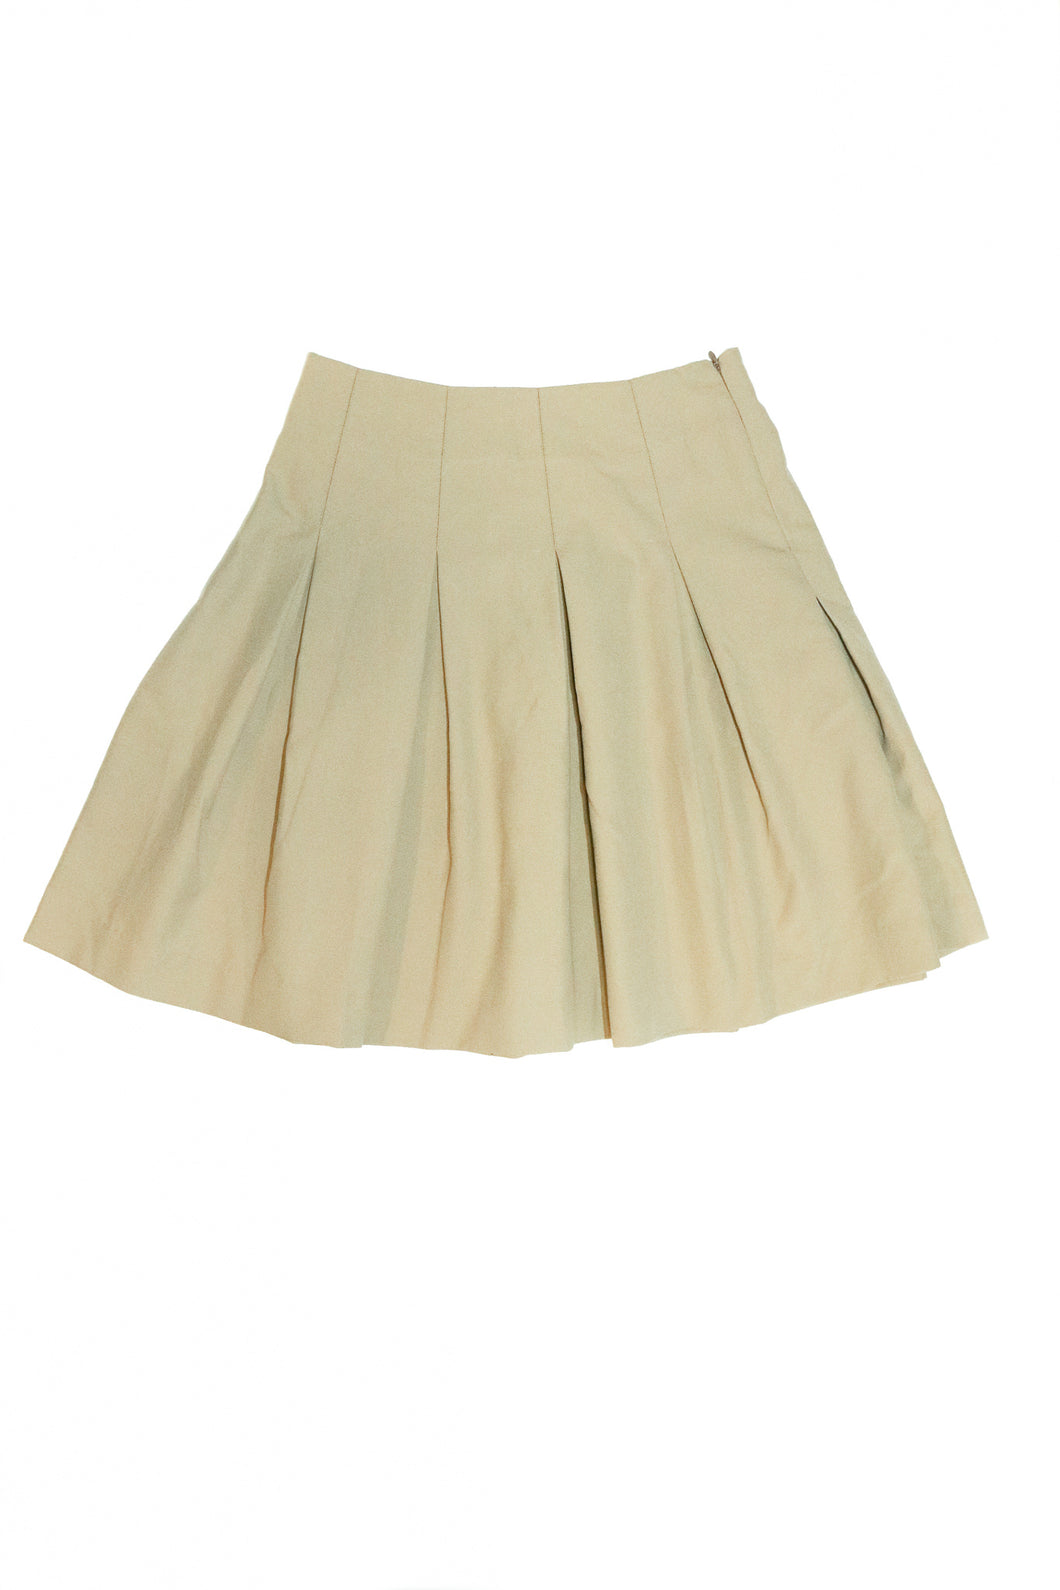 Westridge Khaki Skirt